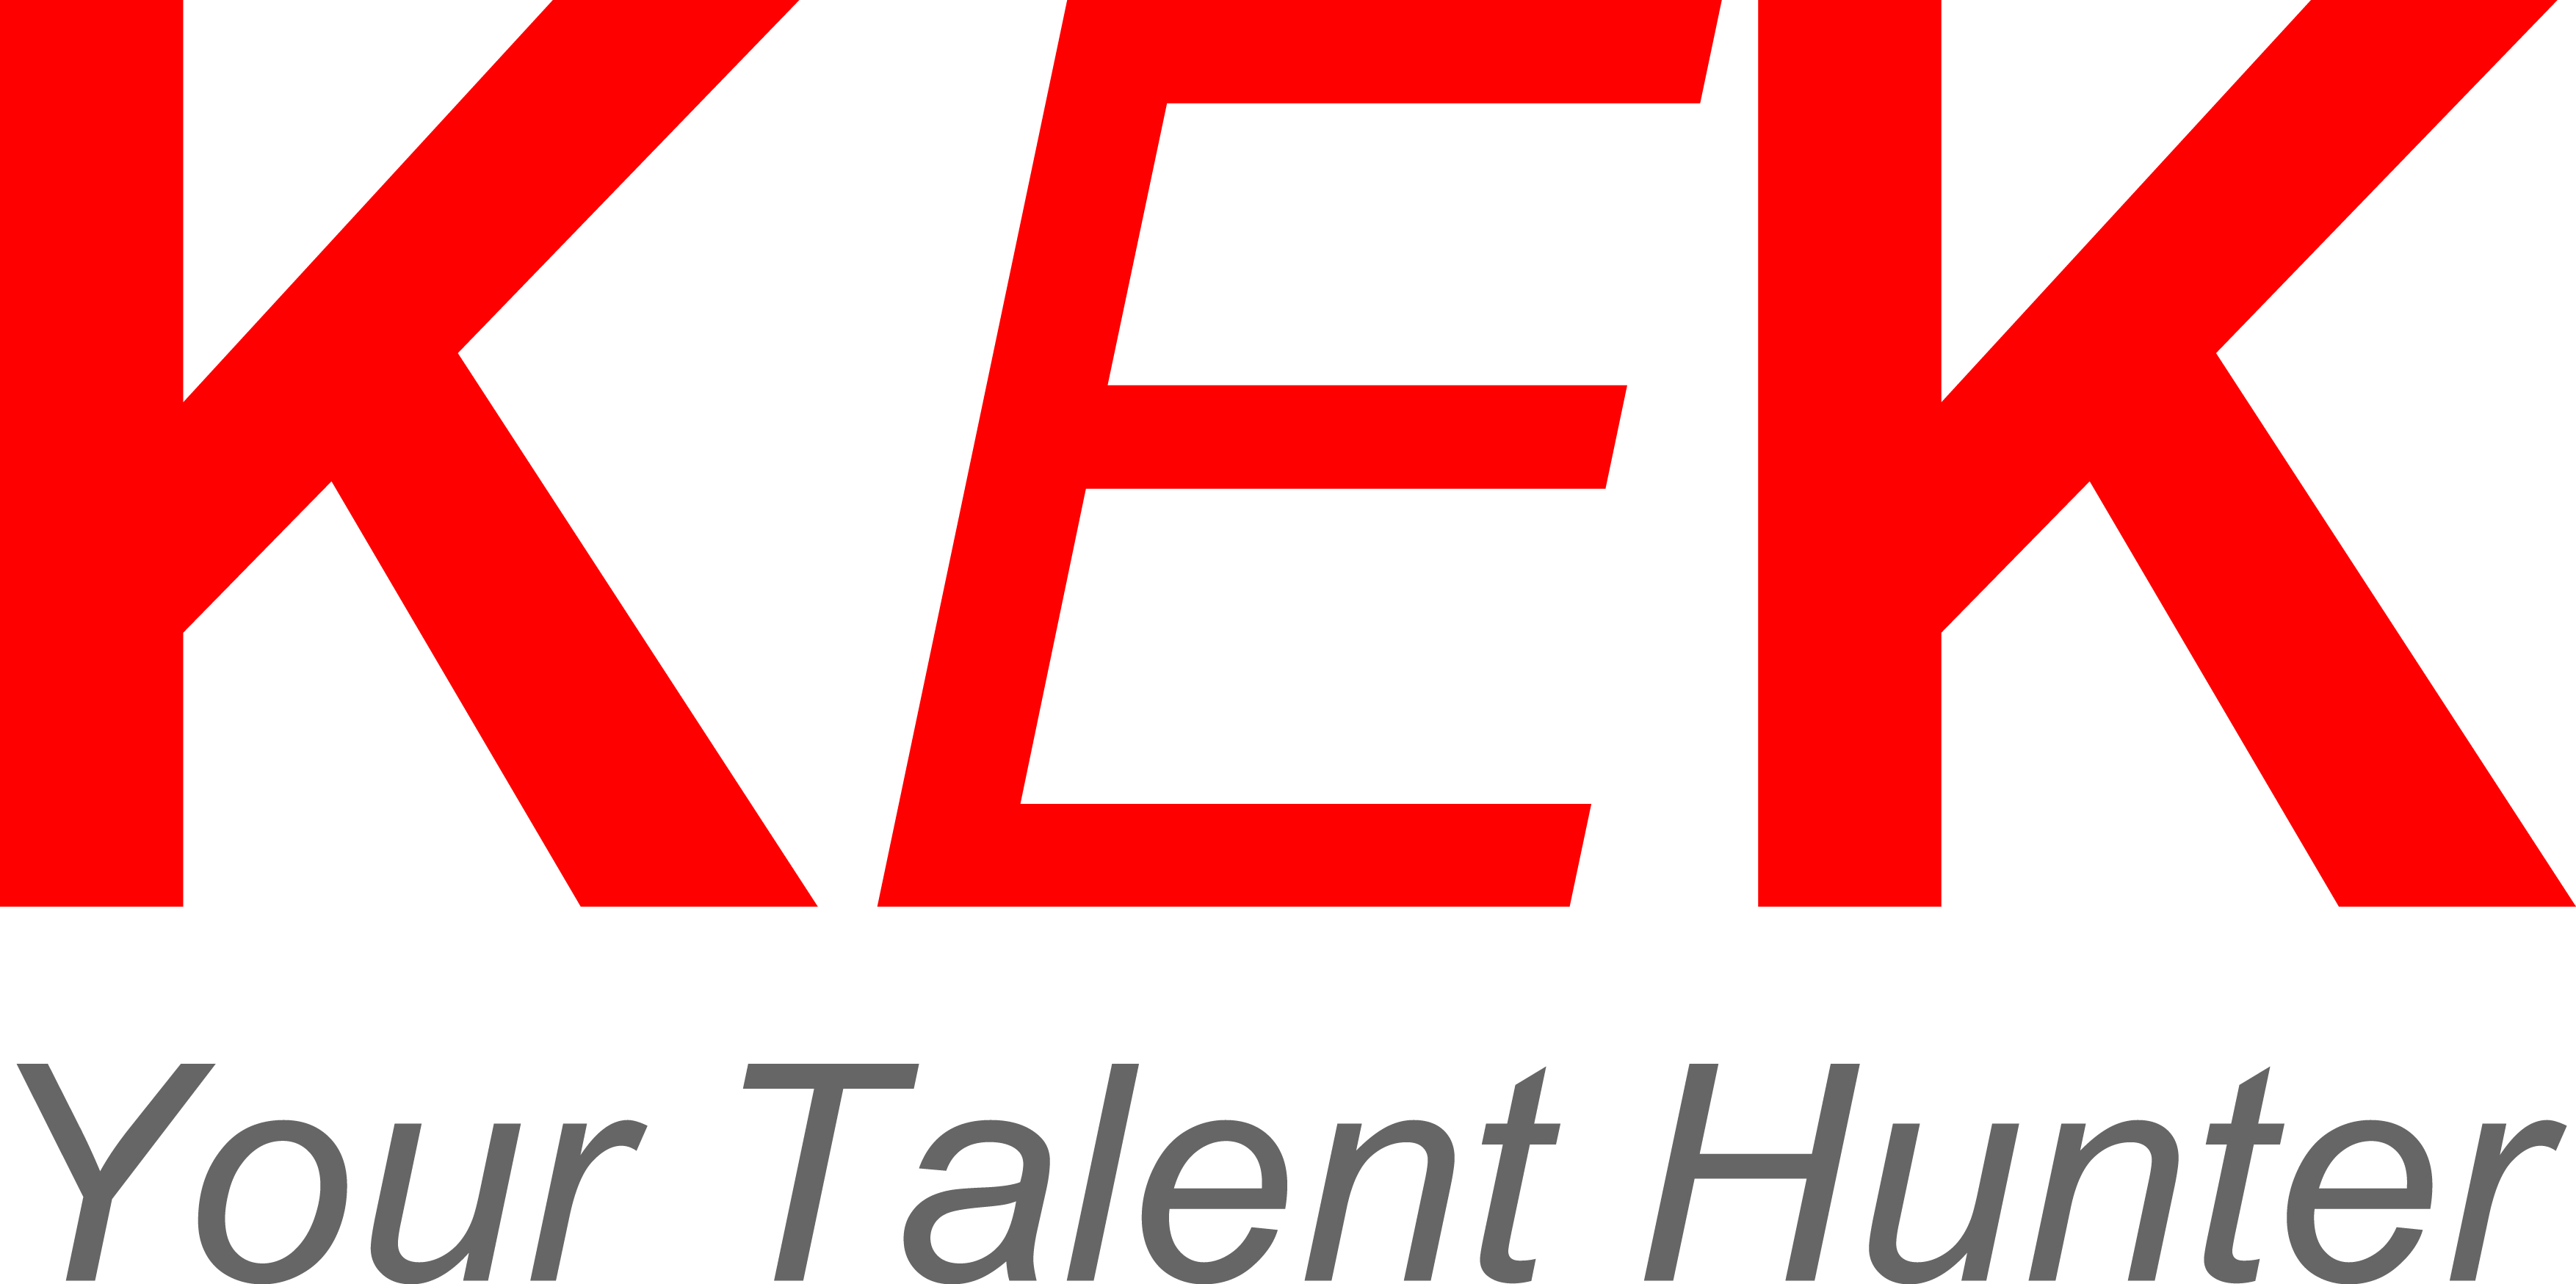 KEK Consultancy Company LimitedJunior Relationship Manager - Japanese speaking (Overseas bank, 1 year contract) - Ref. 1787